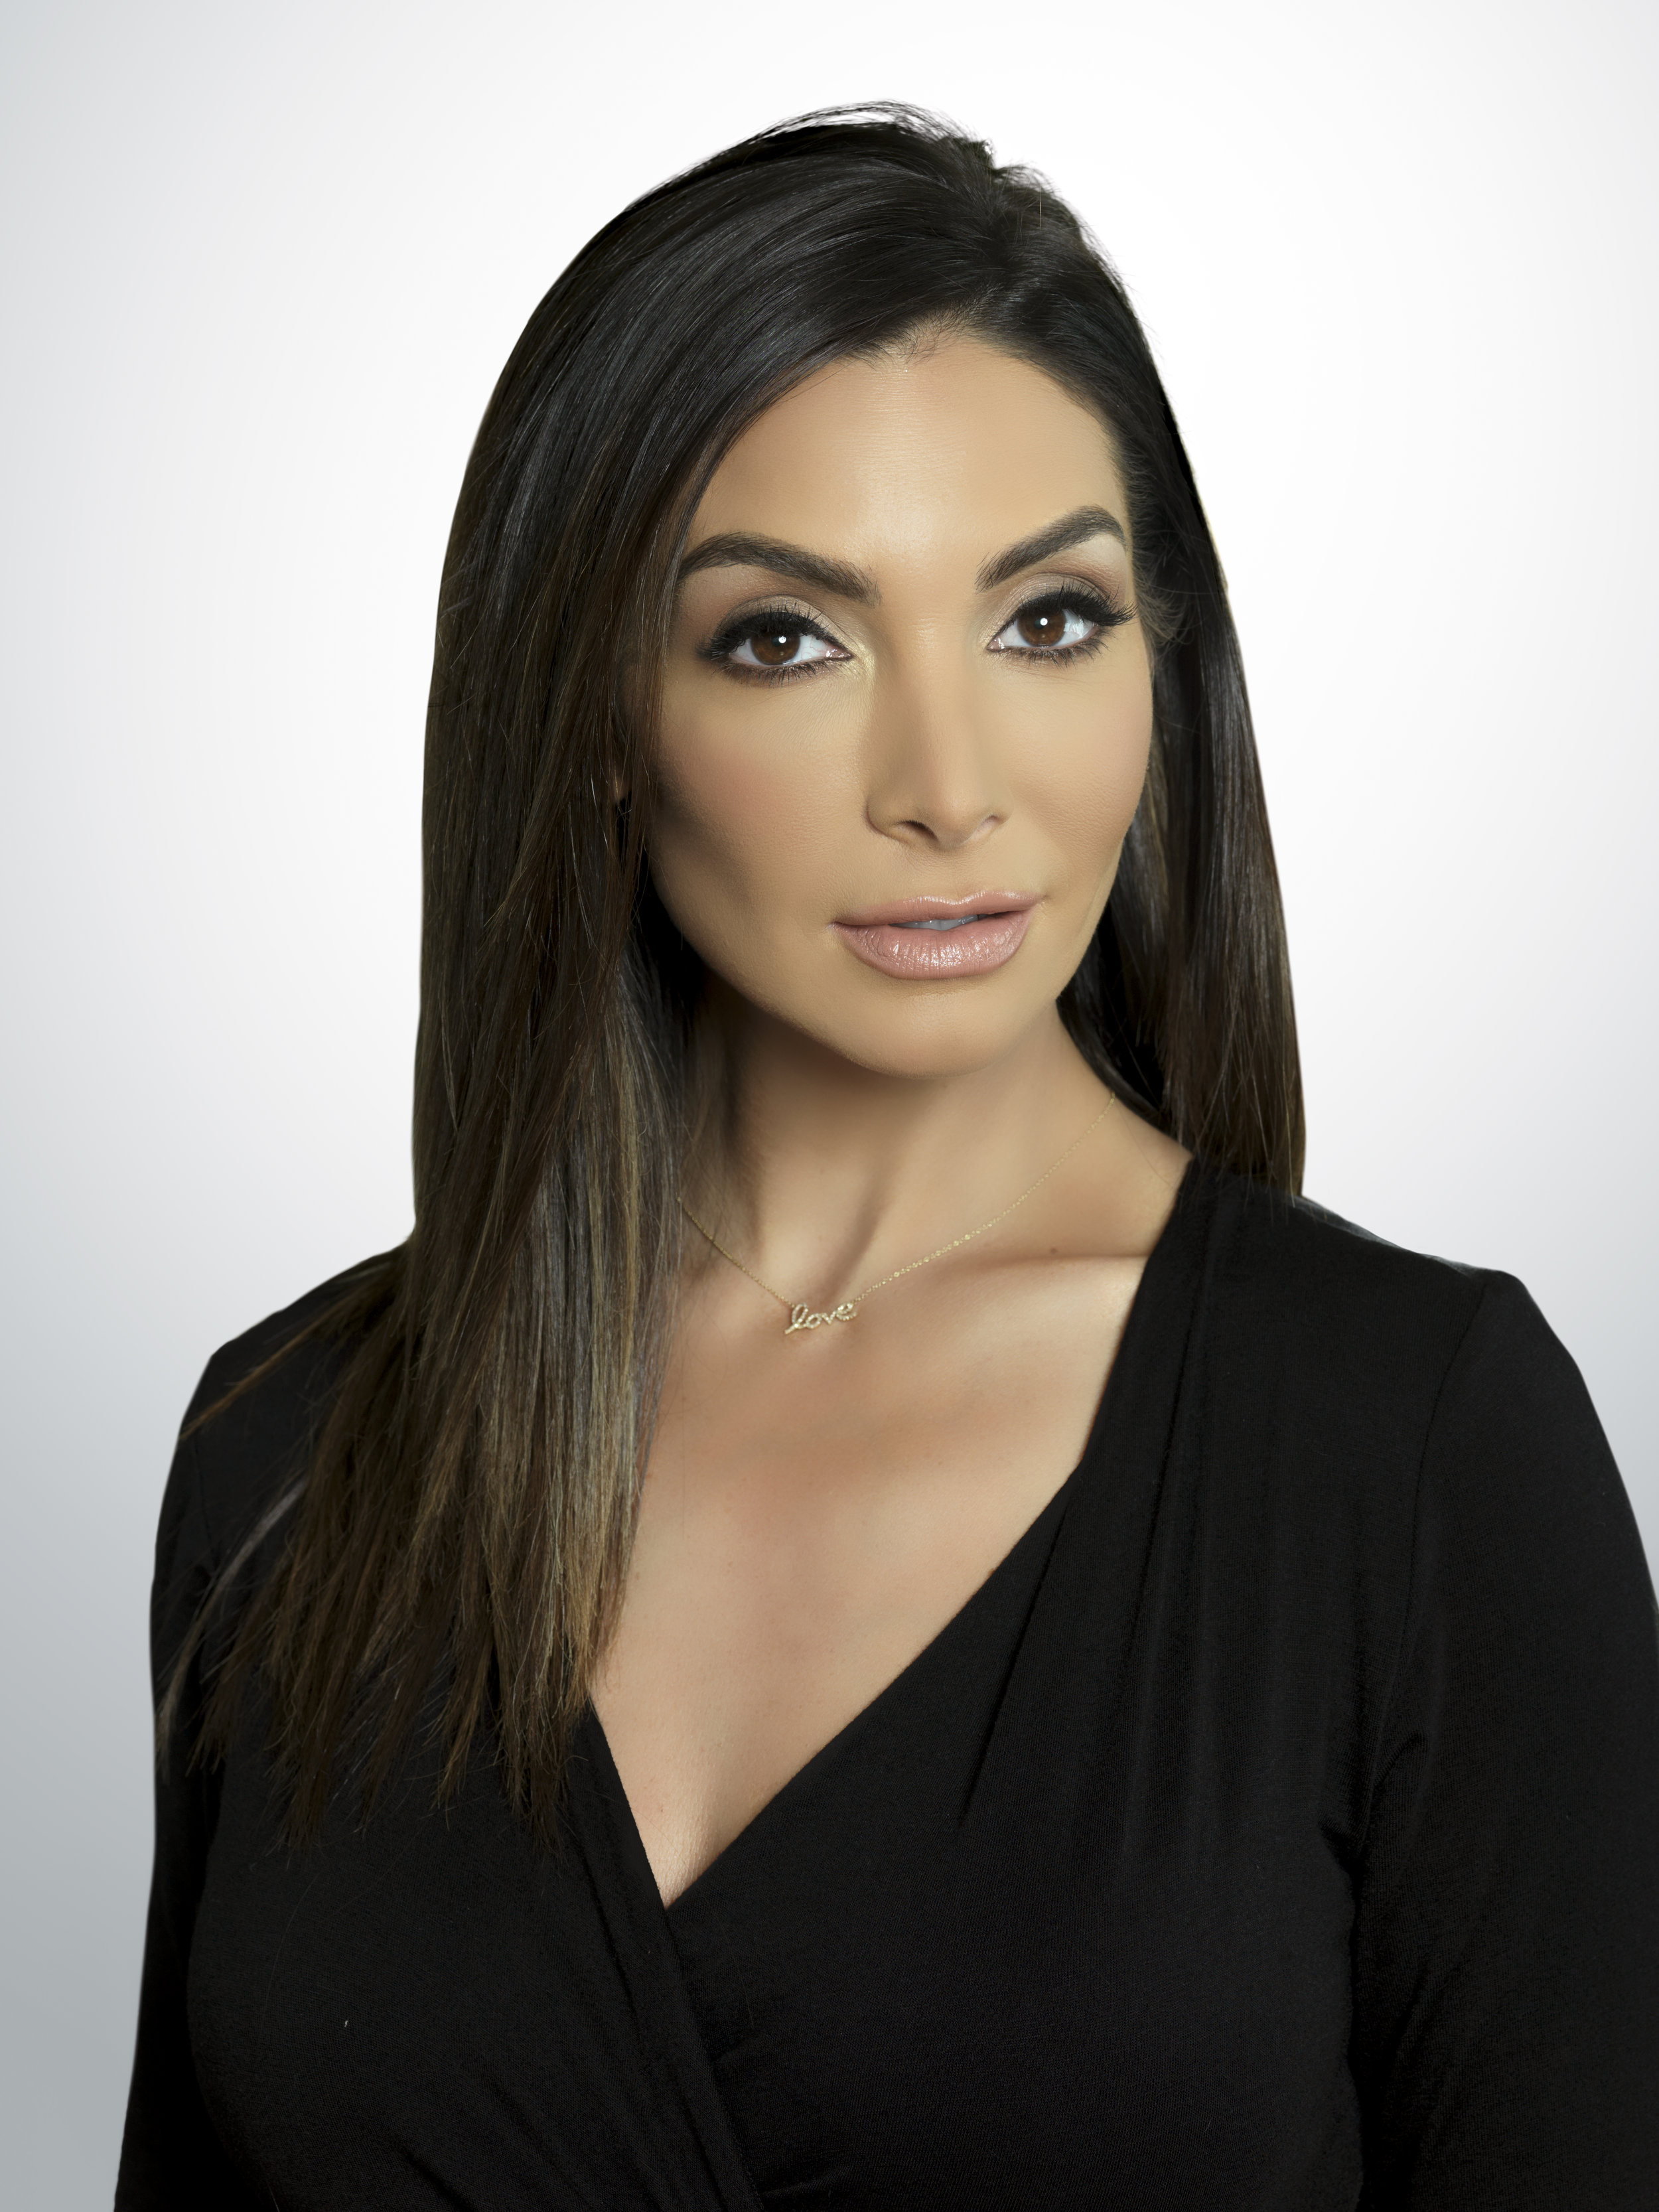 Courtney Lopez, Mario's wife and on-air colleague.